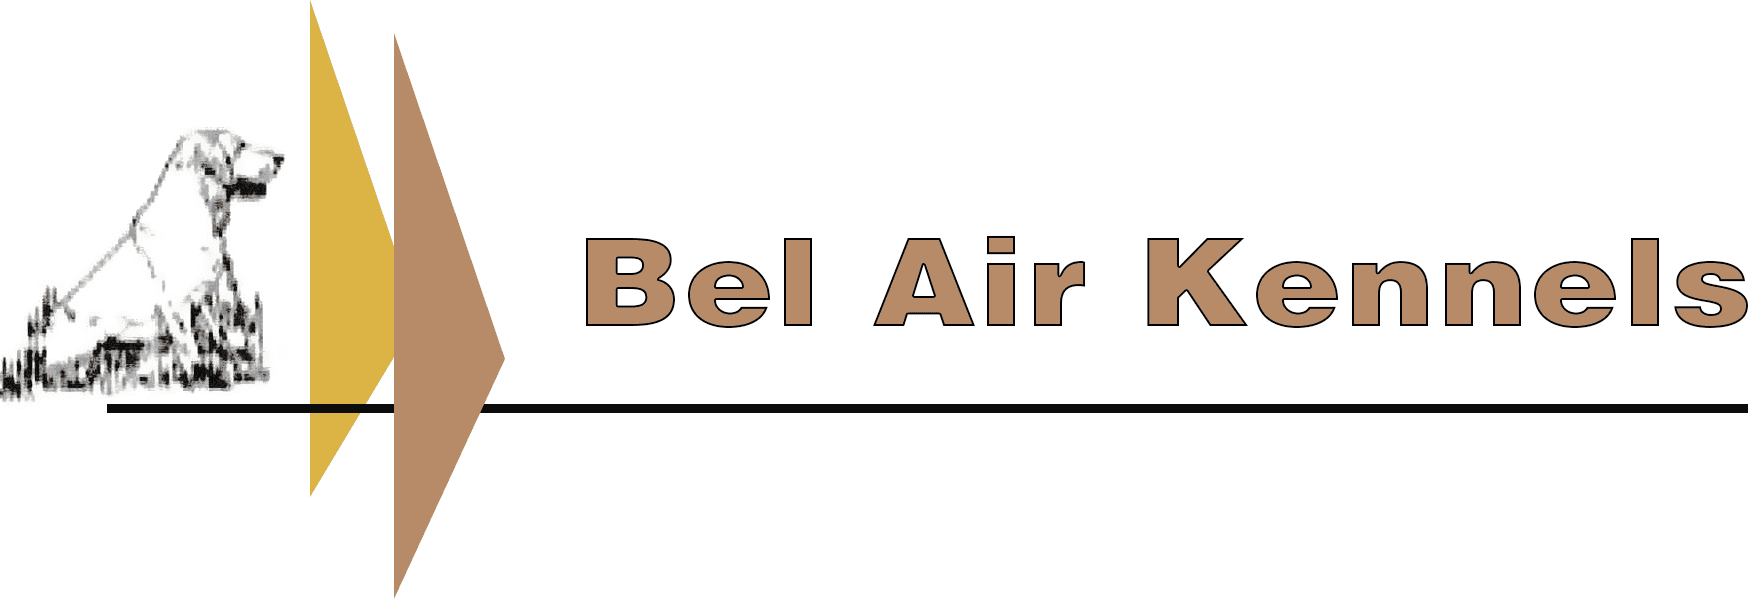 Bel Air Kennels - Logo